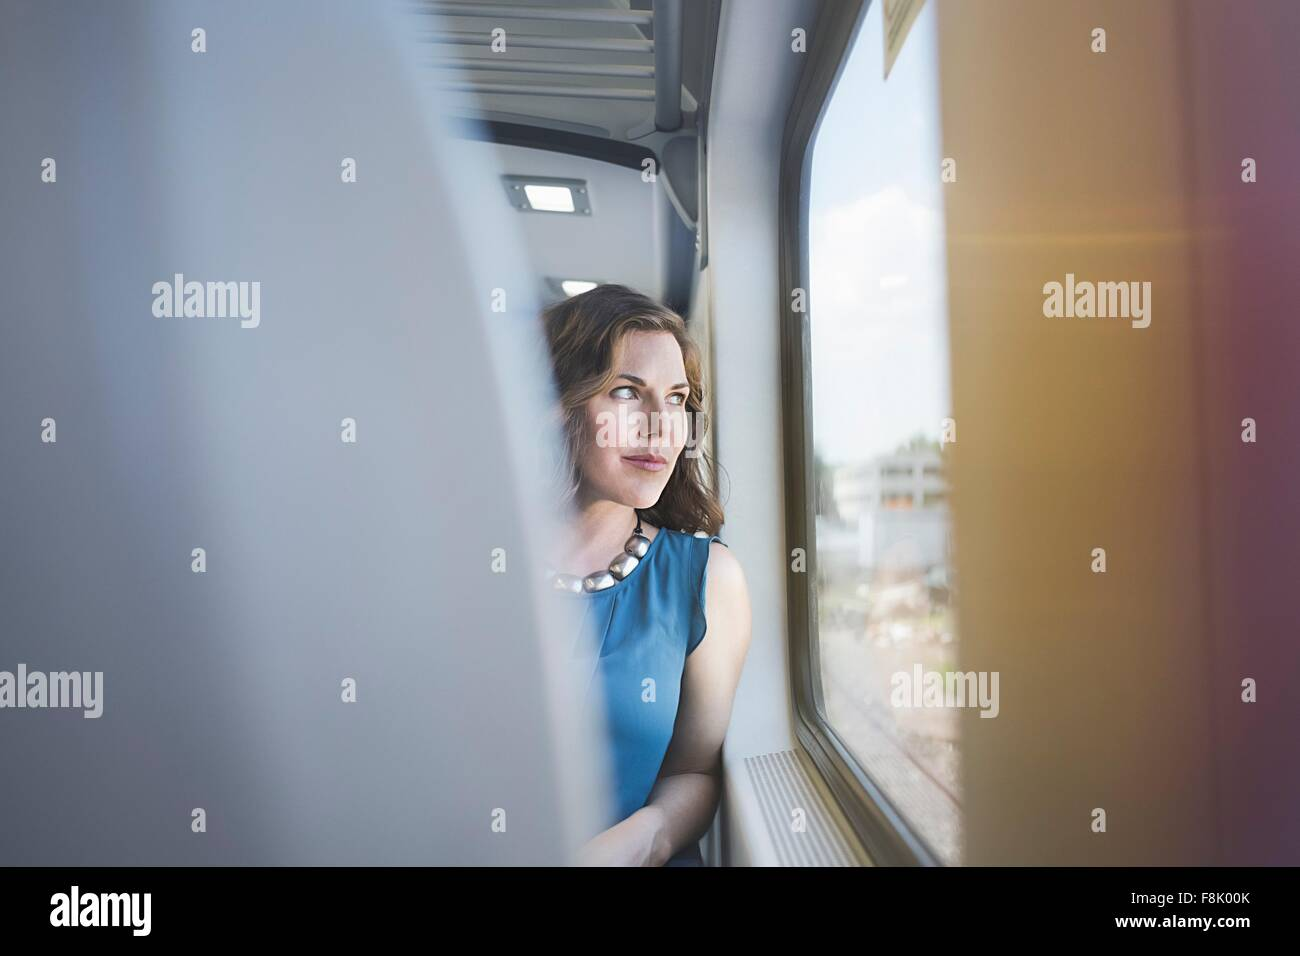 Mid adult woman on train, looking out of window - Stock Image